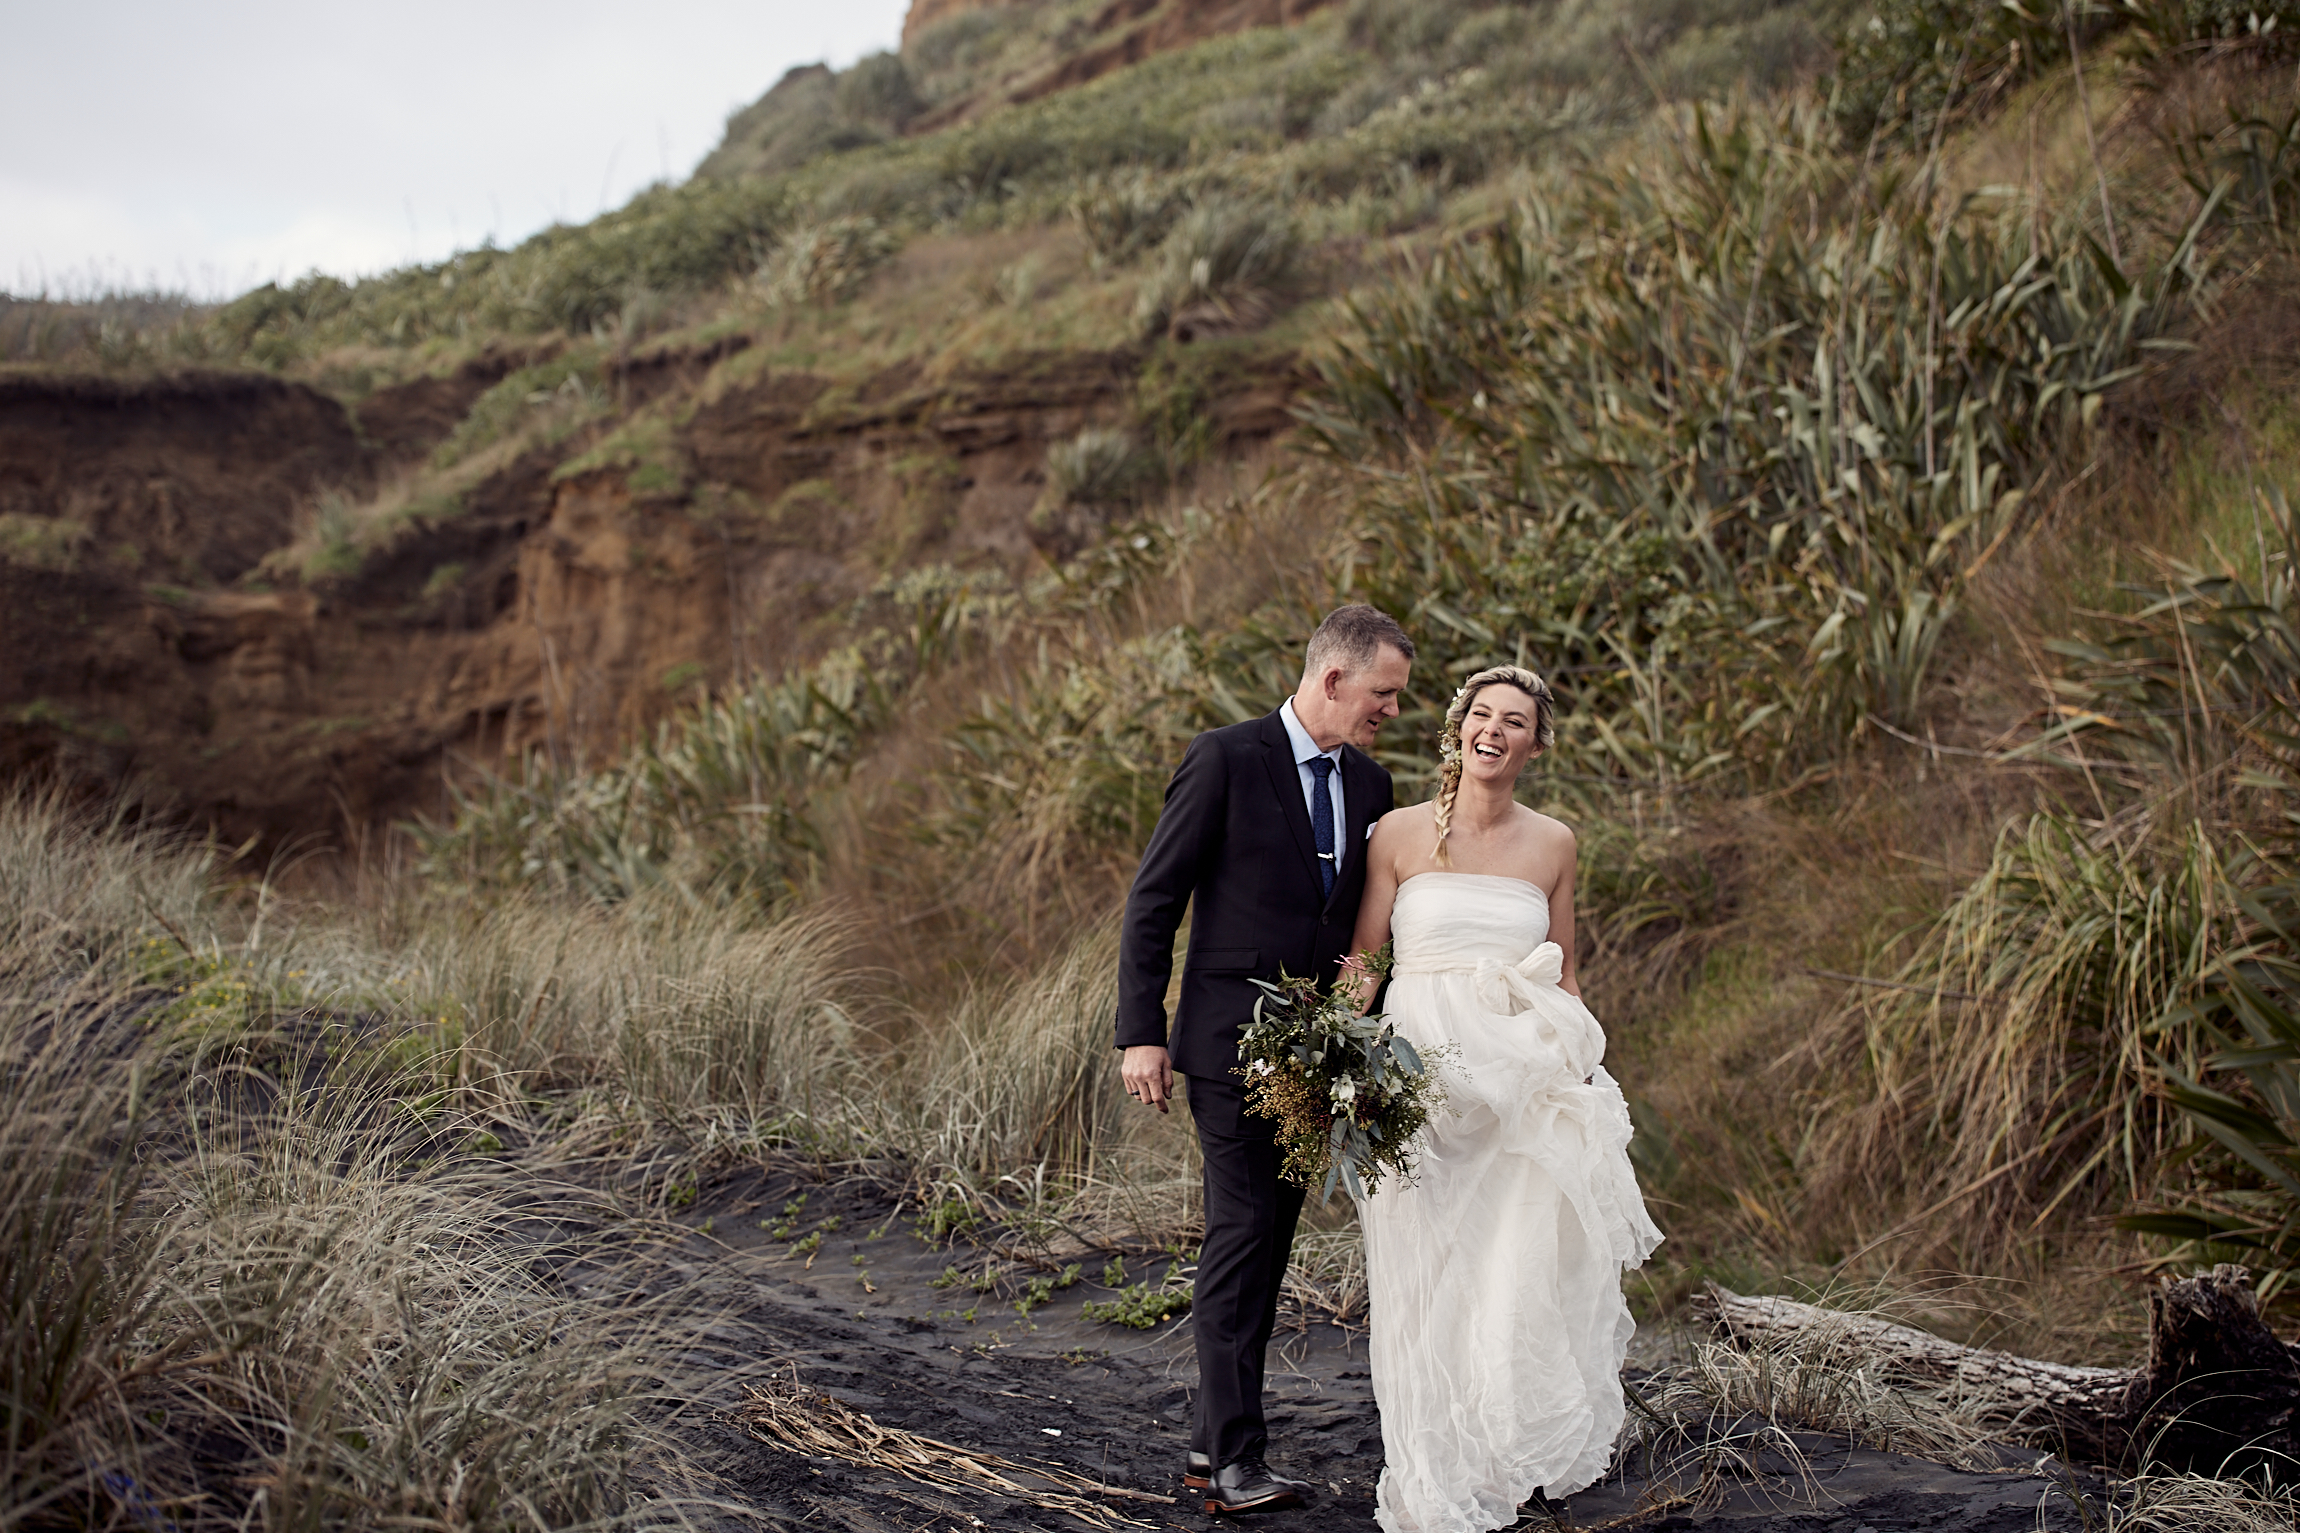 Auckland wedding at the beach